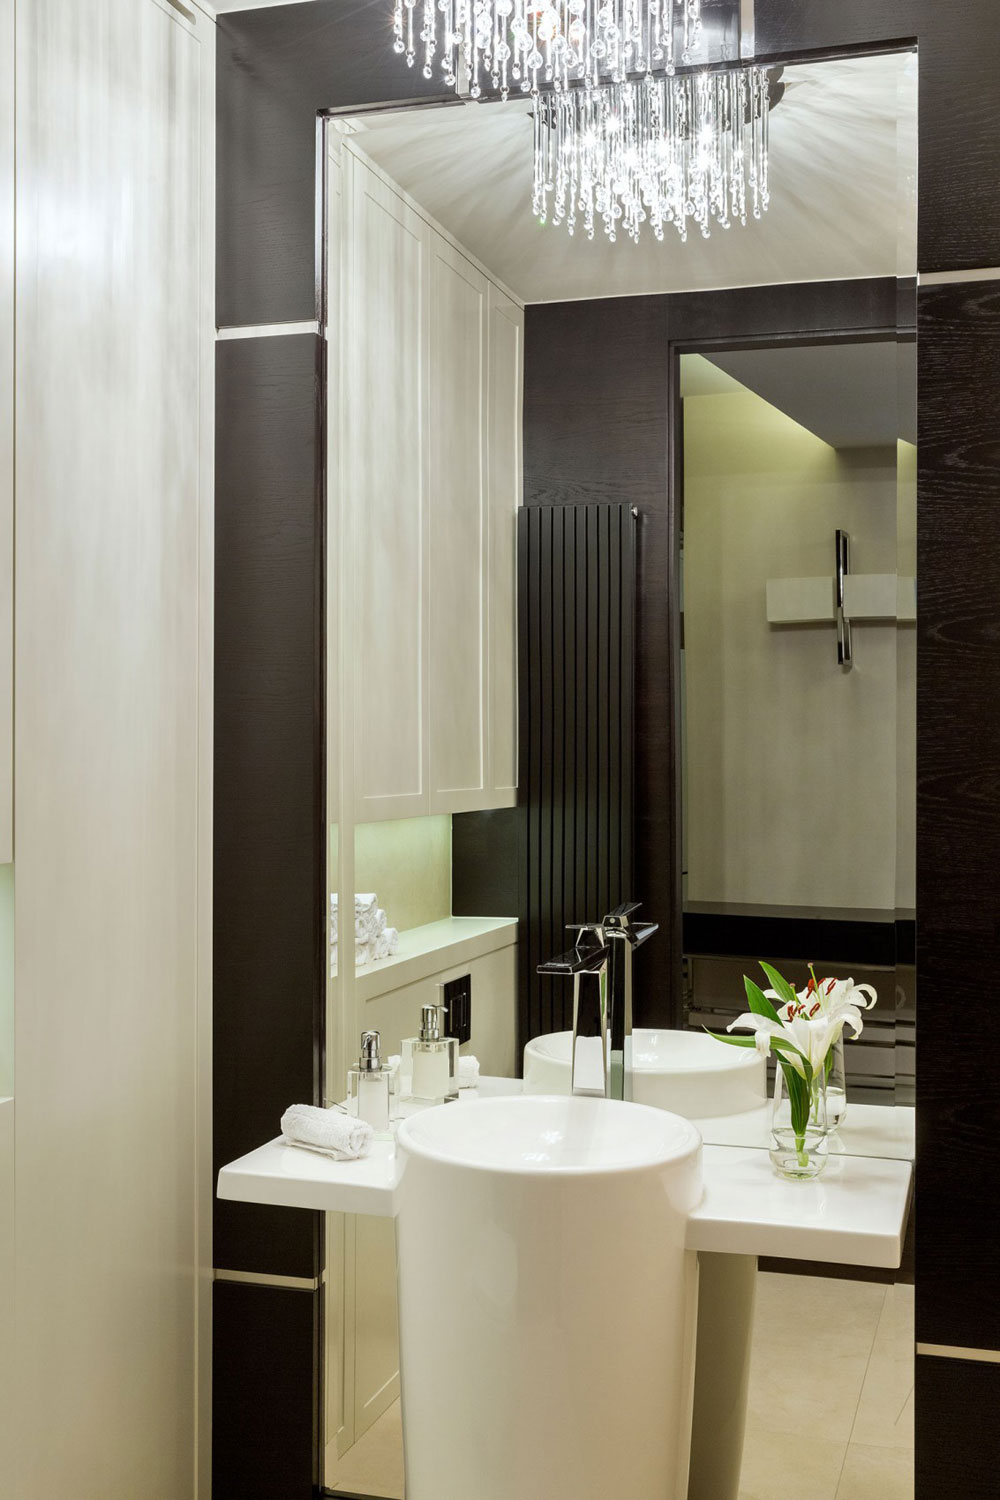 Apartment-with-the-look-and-feel-of-a-luxury-hotel-room-suite-17-Apartment-with-the-look-and-feel-of a luxurious-hotel room-suite